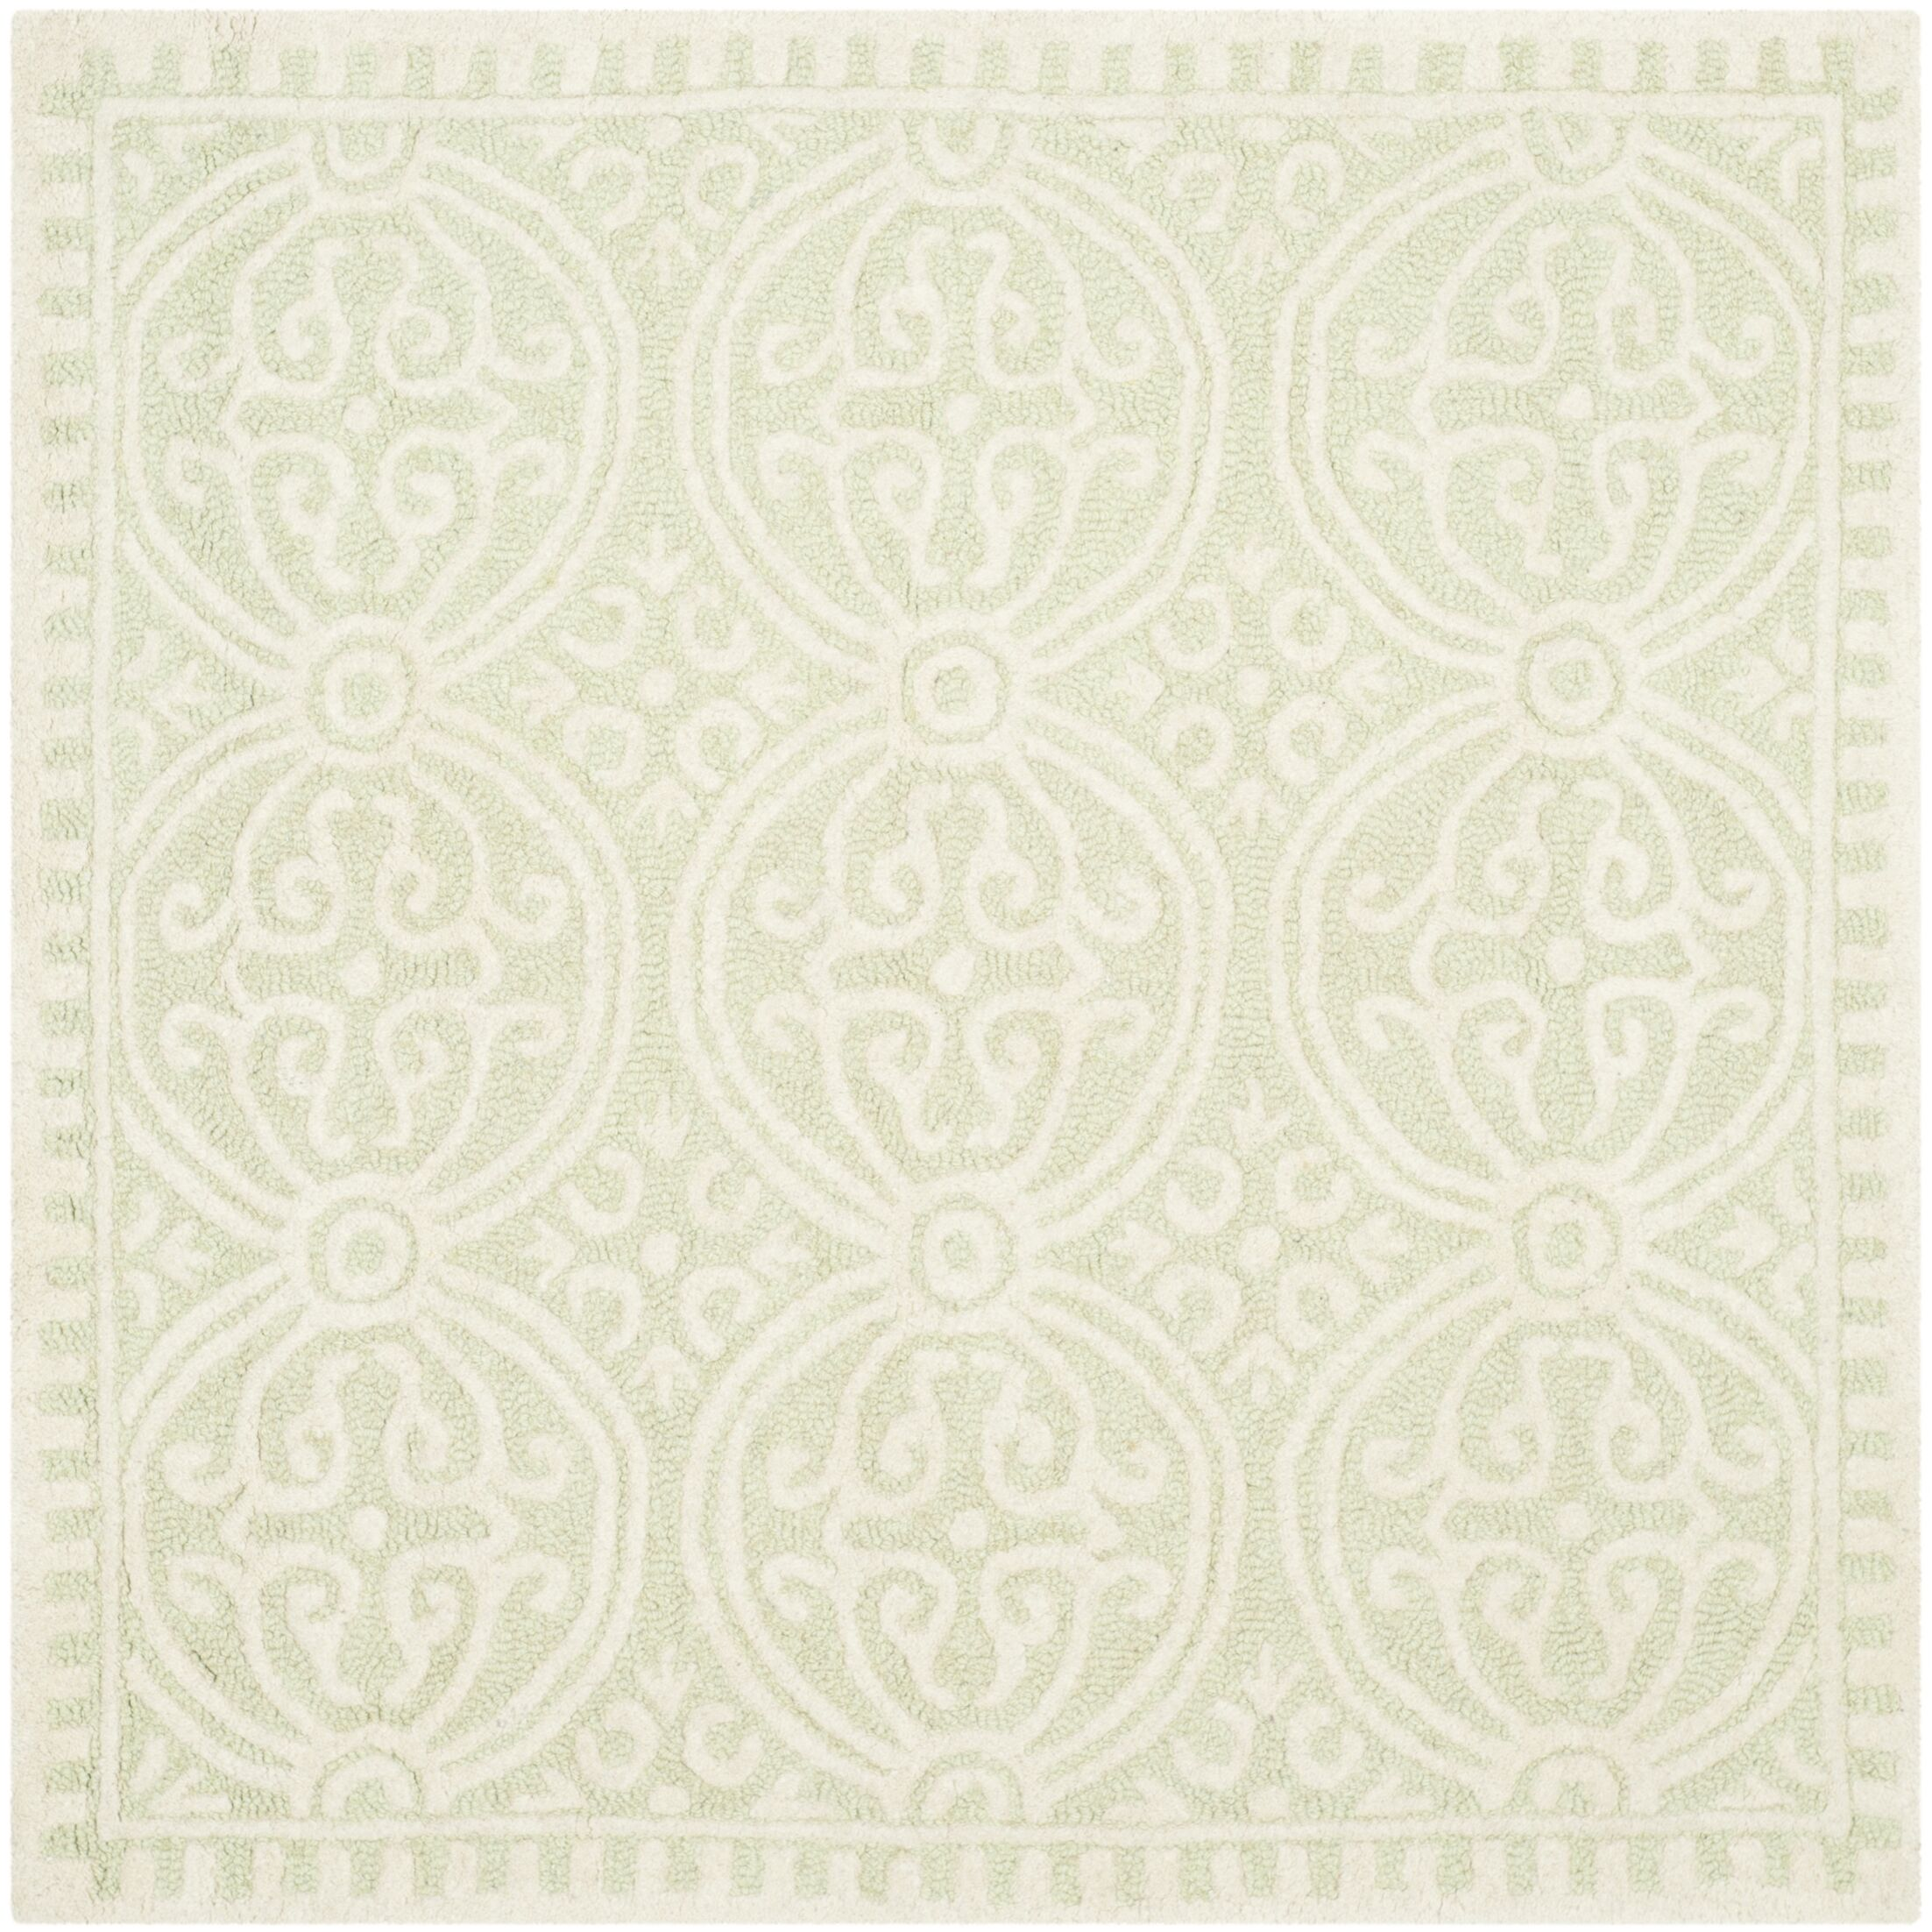 Diona Light Green/Ivory Area Rug Rug Size: Square 6'